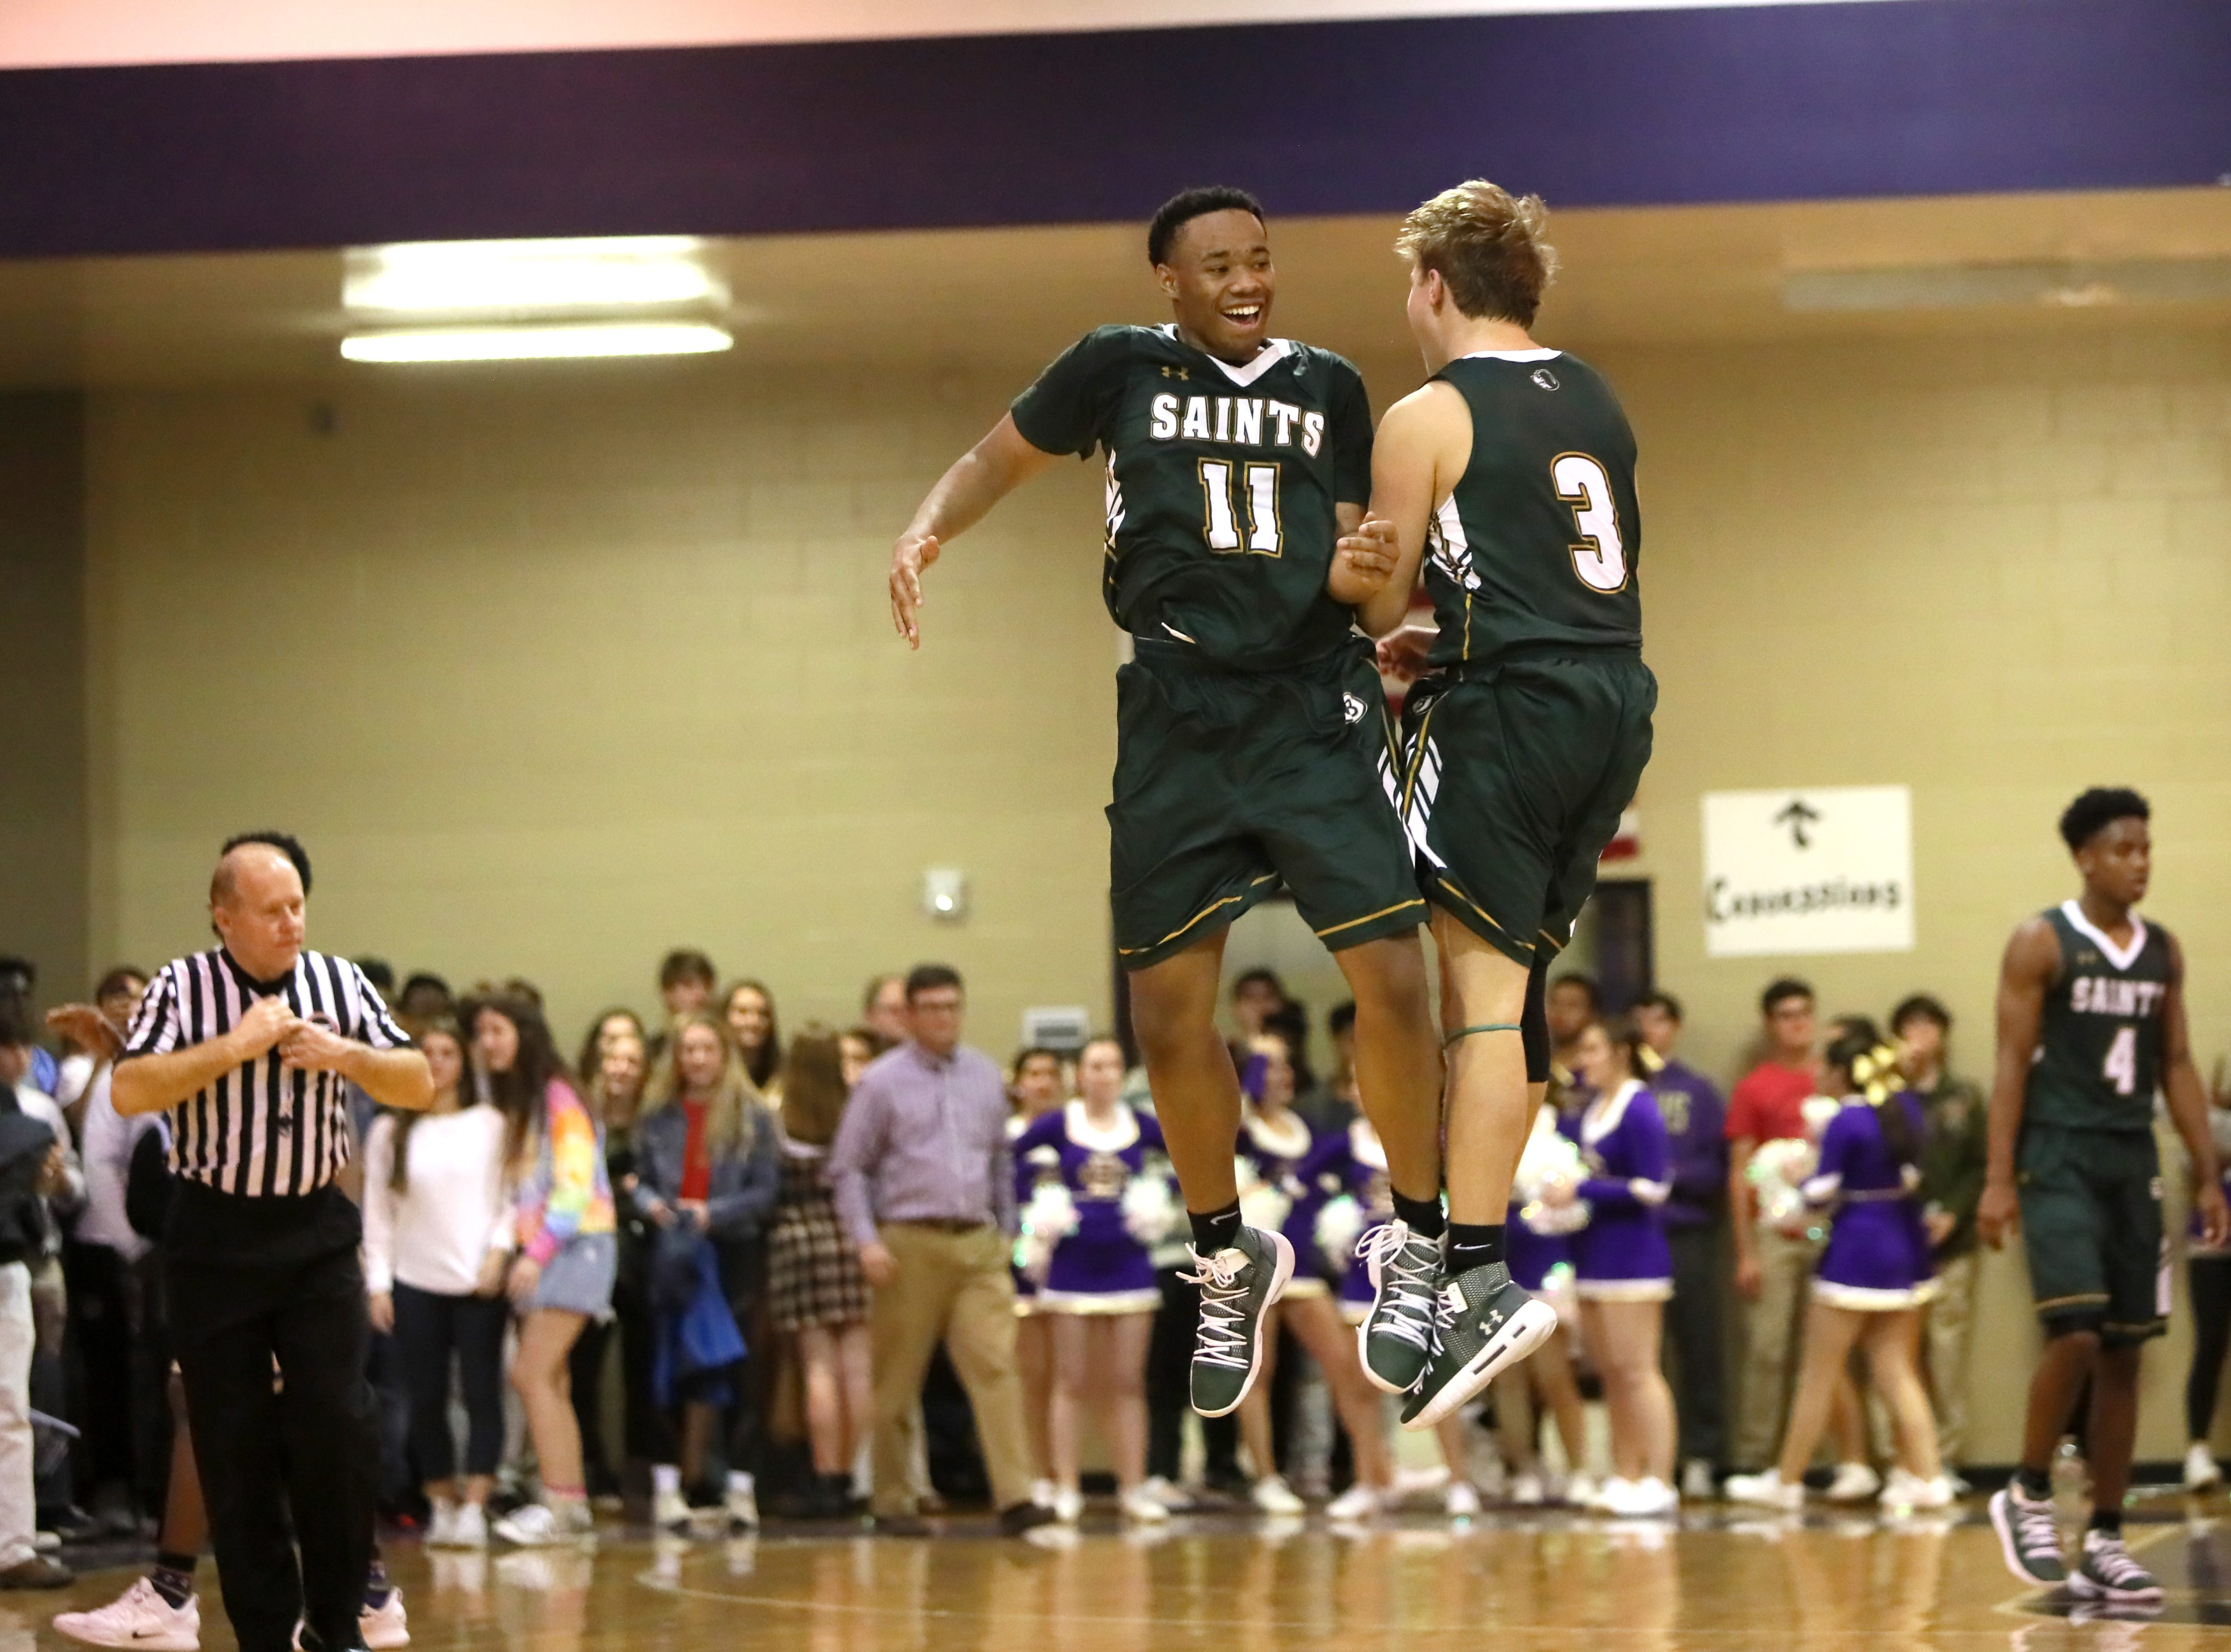 Briarcrest's Cleveland Yates, left, and Tyler Harrington celebrate their win at Christian Brothers High School on Friday, Jan. 11, 2019.